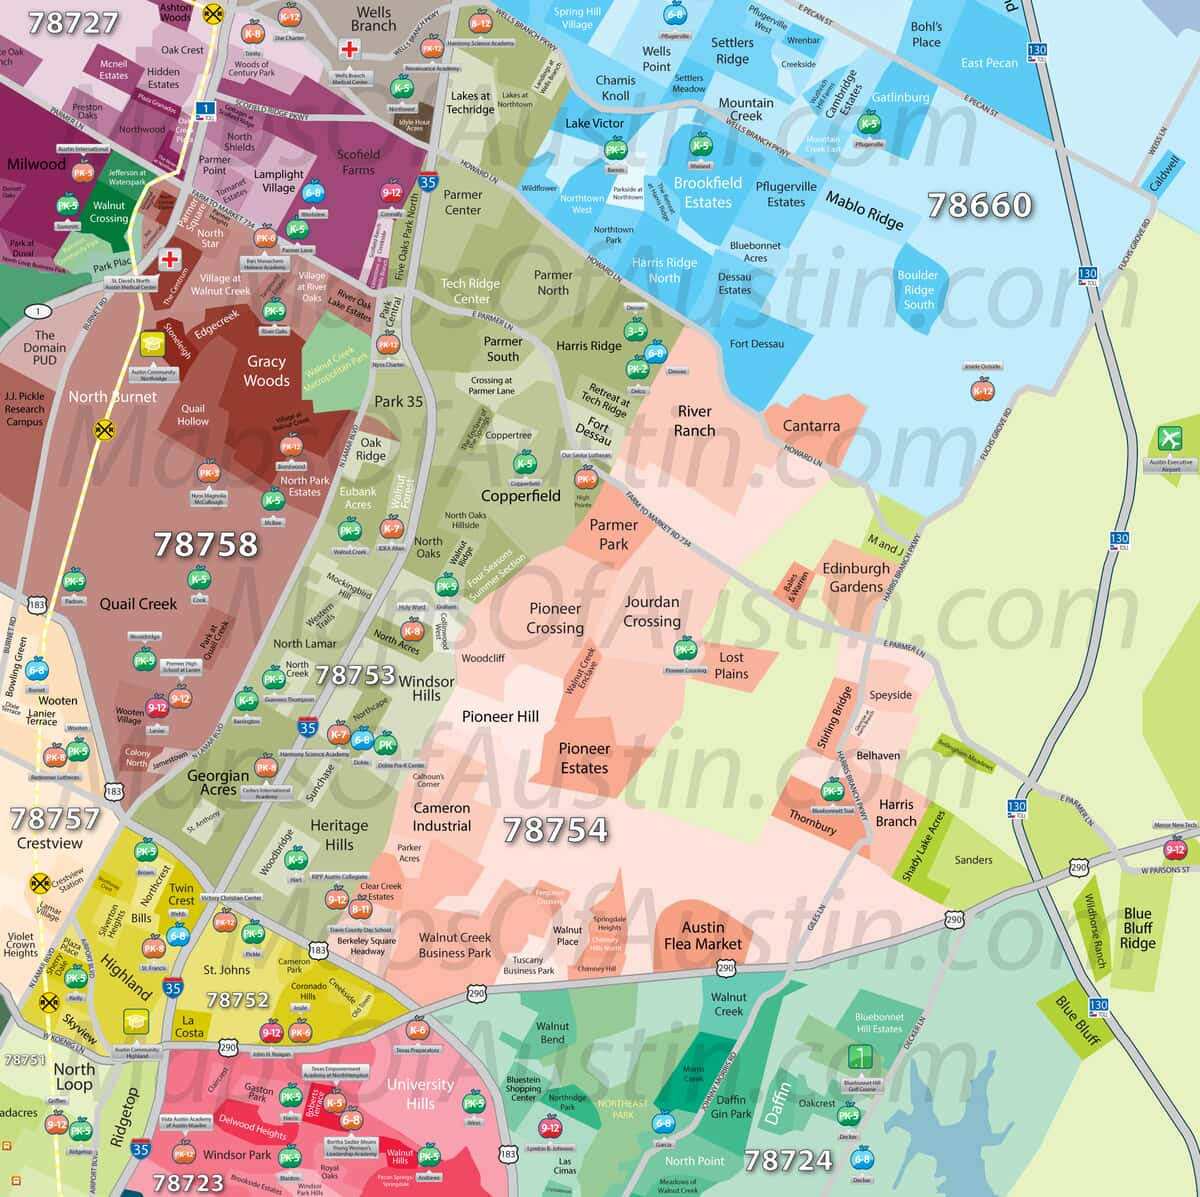 Northeast Austin, TX - Northeast Austin, TX Neighborhood Map ... on zip codes and counties, zip code mapping data, zip codes for warren oh,